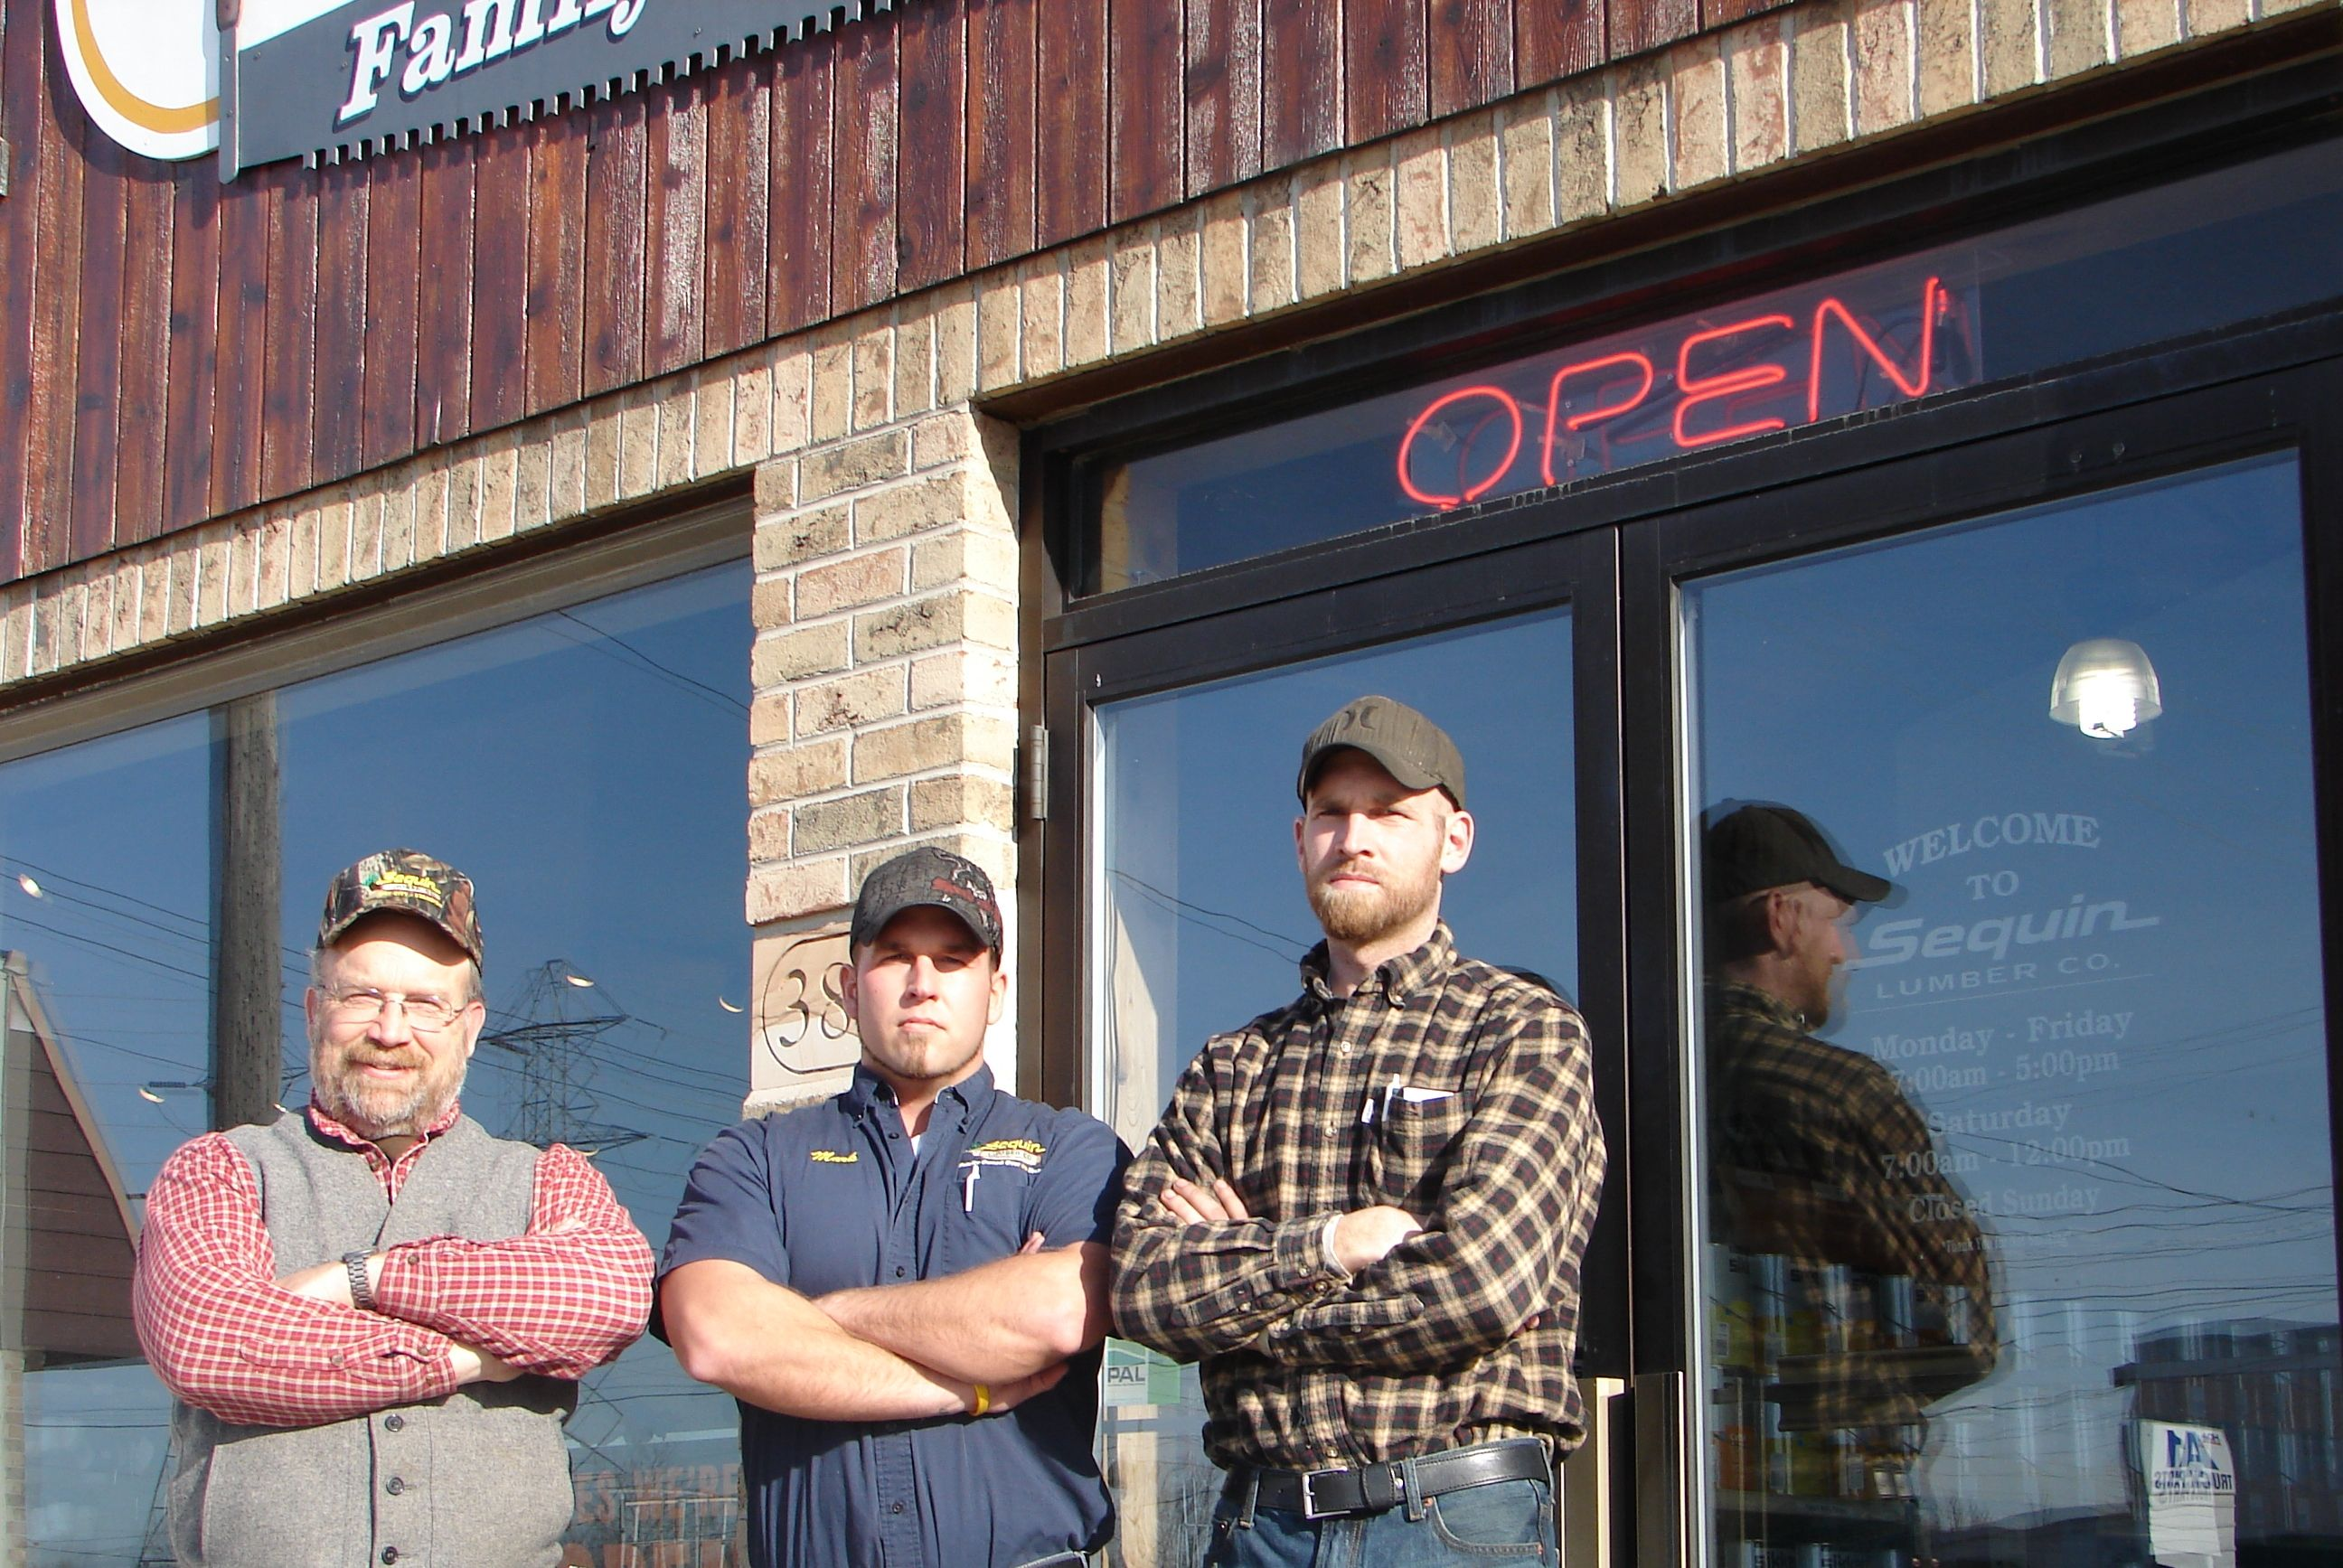 Sequin Lumber – Where Lumber is a Family Affair - Independent We Stand    Family affair, Bay city, Lumber